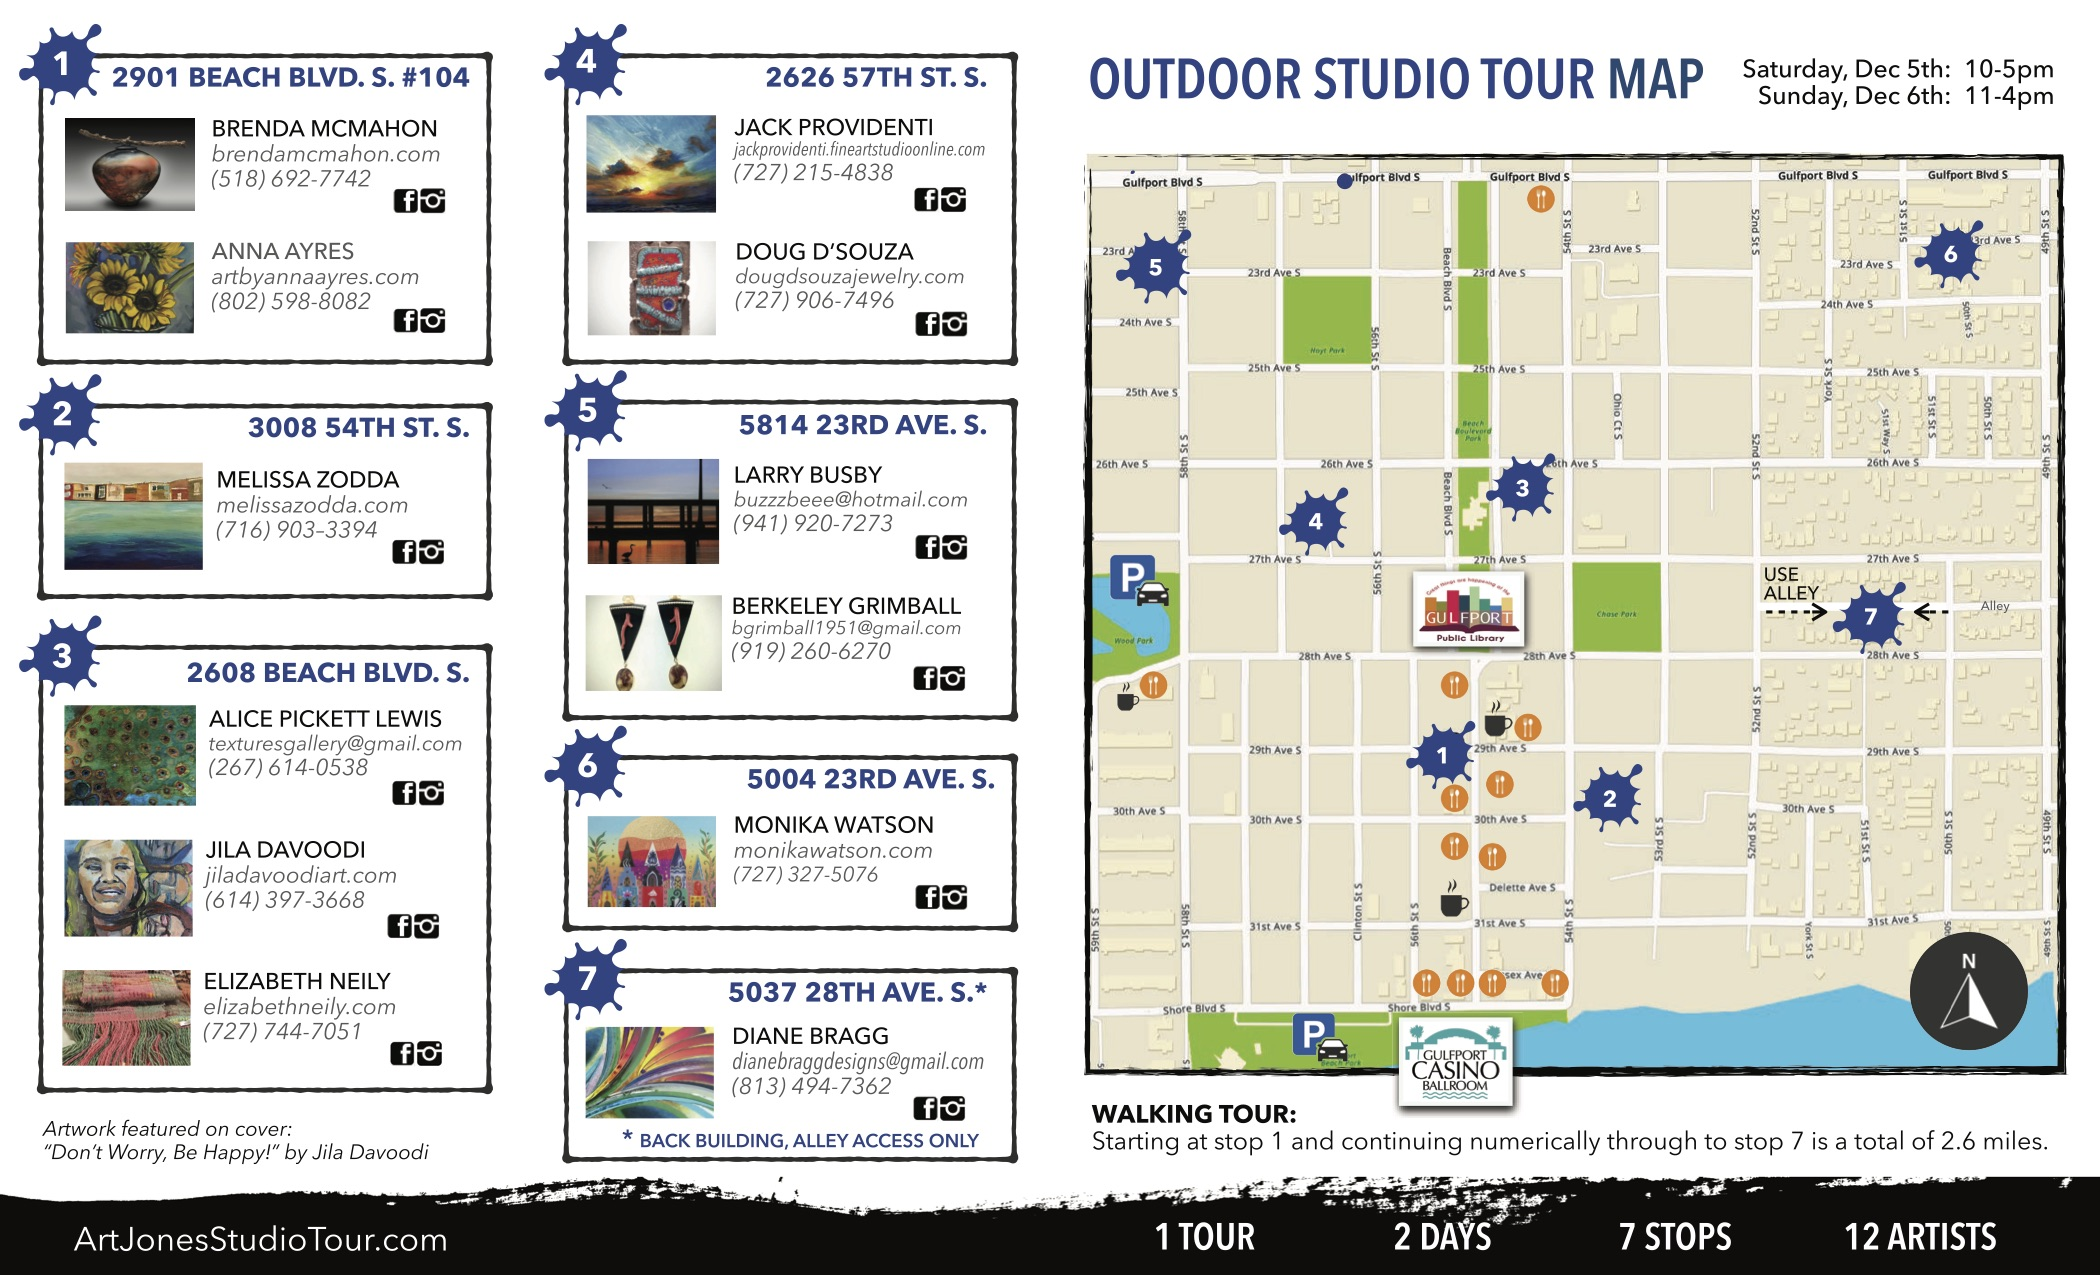 A map including all the locations for ArtJones art studio tour in Gulfport.